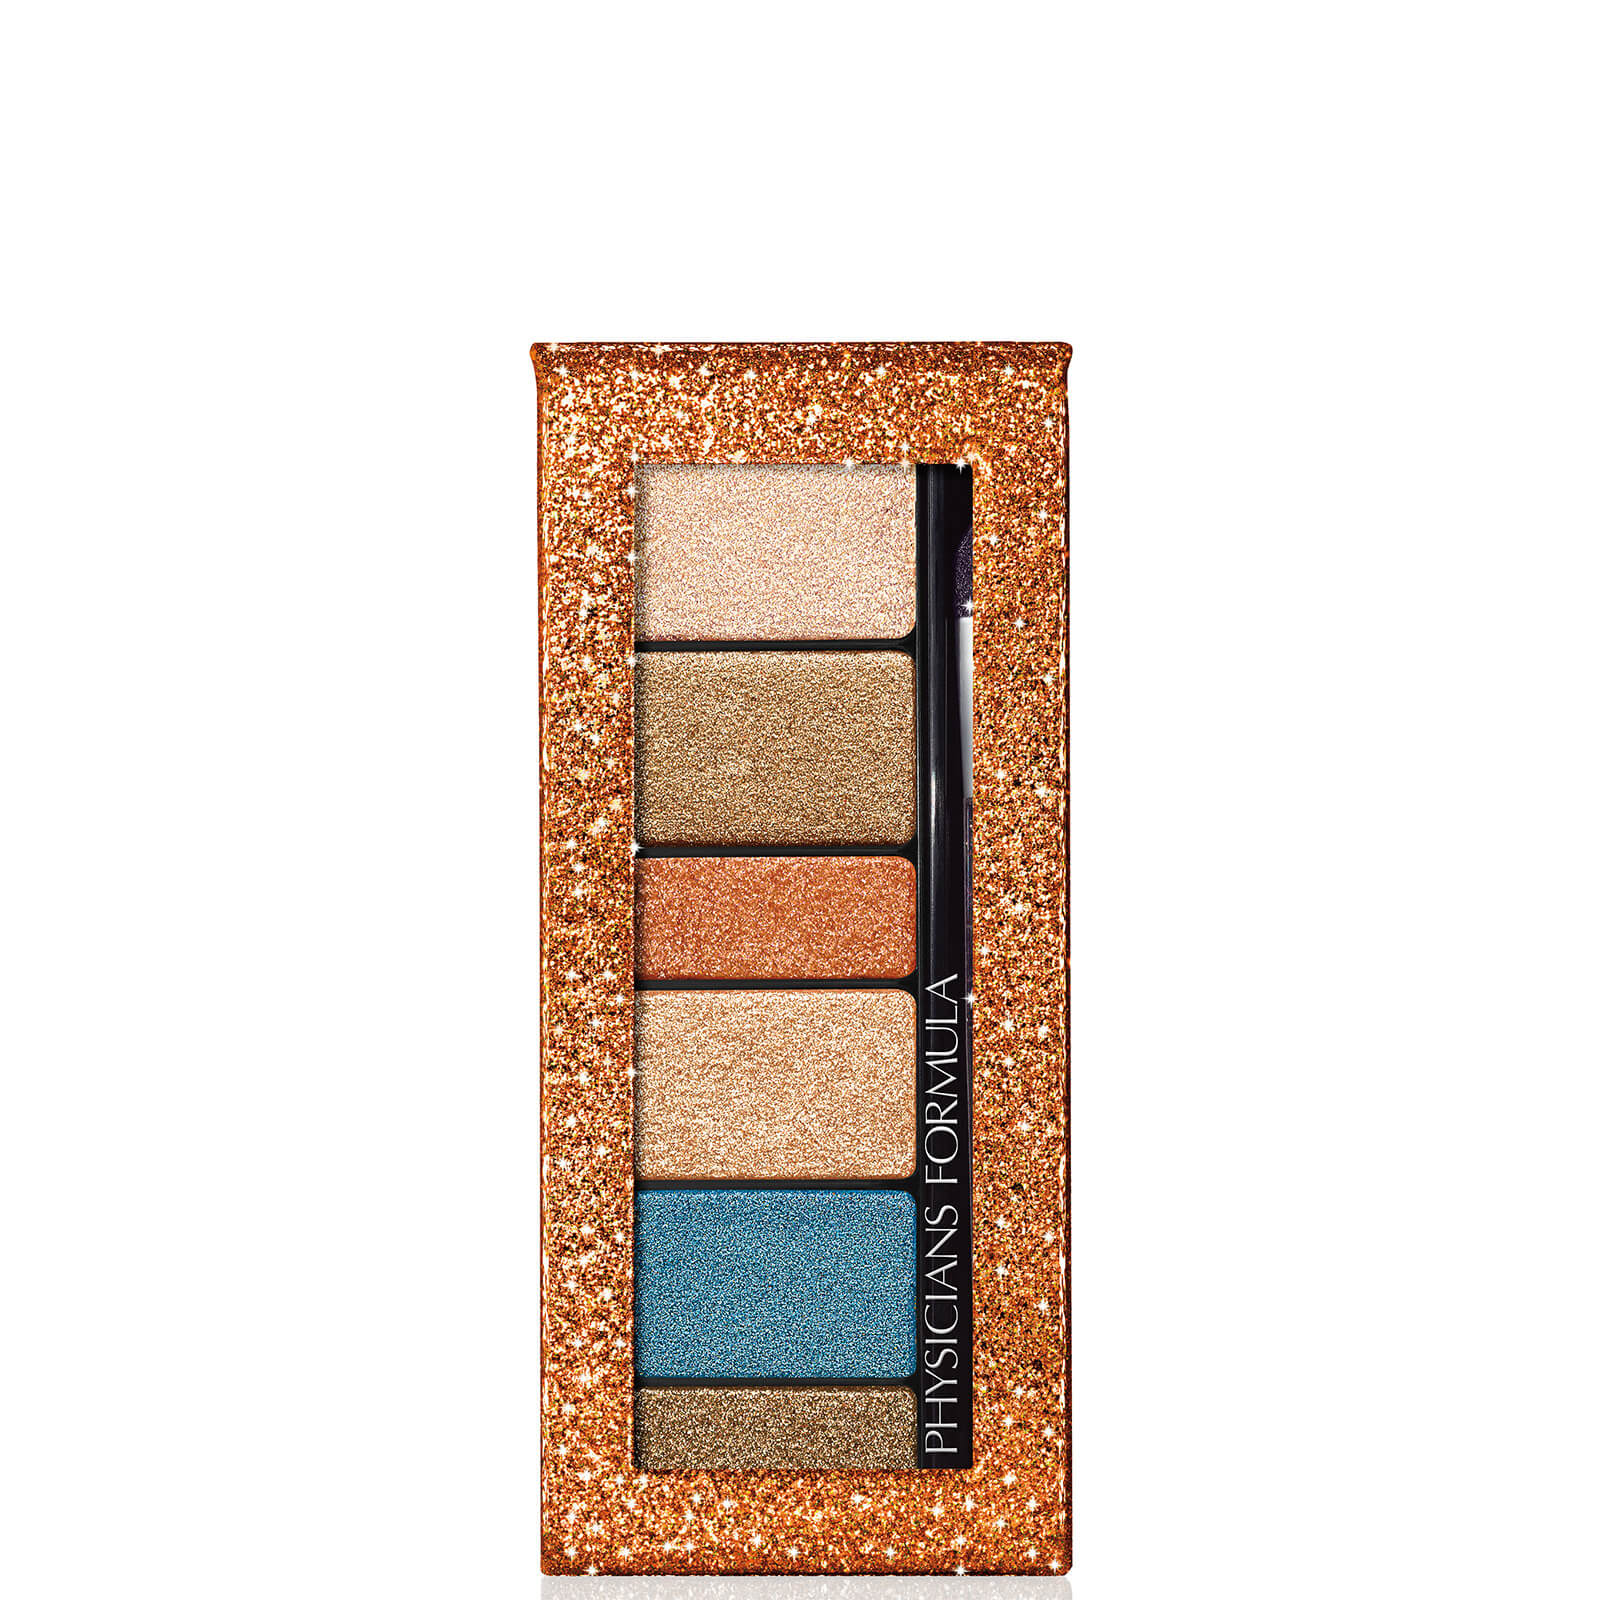 Physicians Formula Shimmer Strips Extreme Shimmer Shadow and Liner 3.4g (Various Shades) - Platinum Eyes